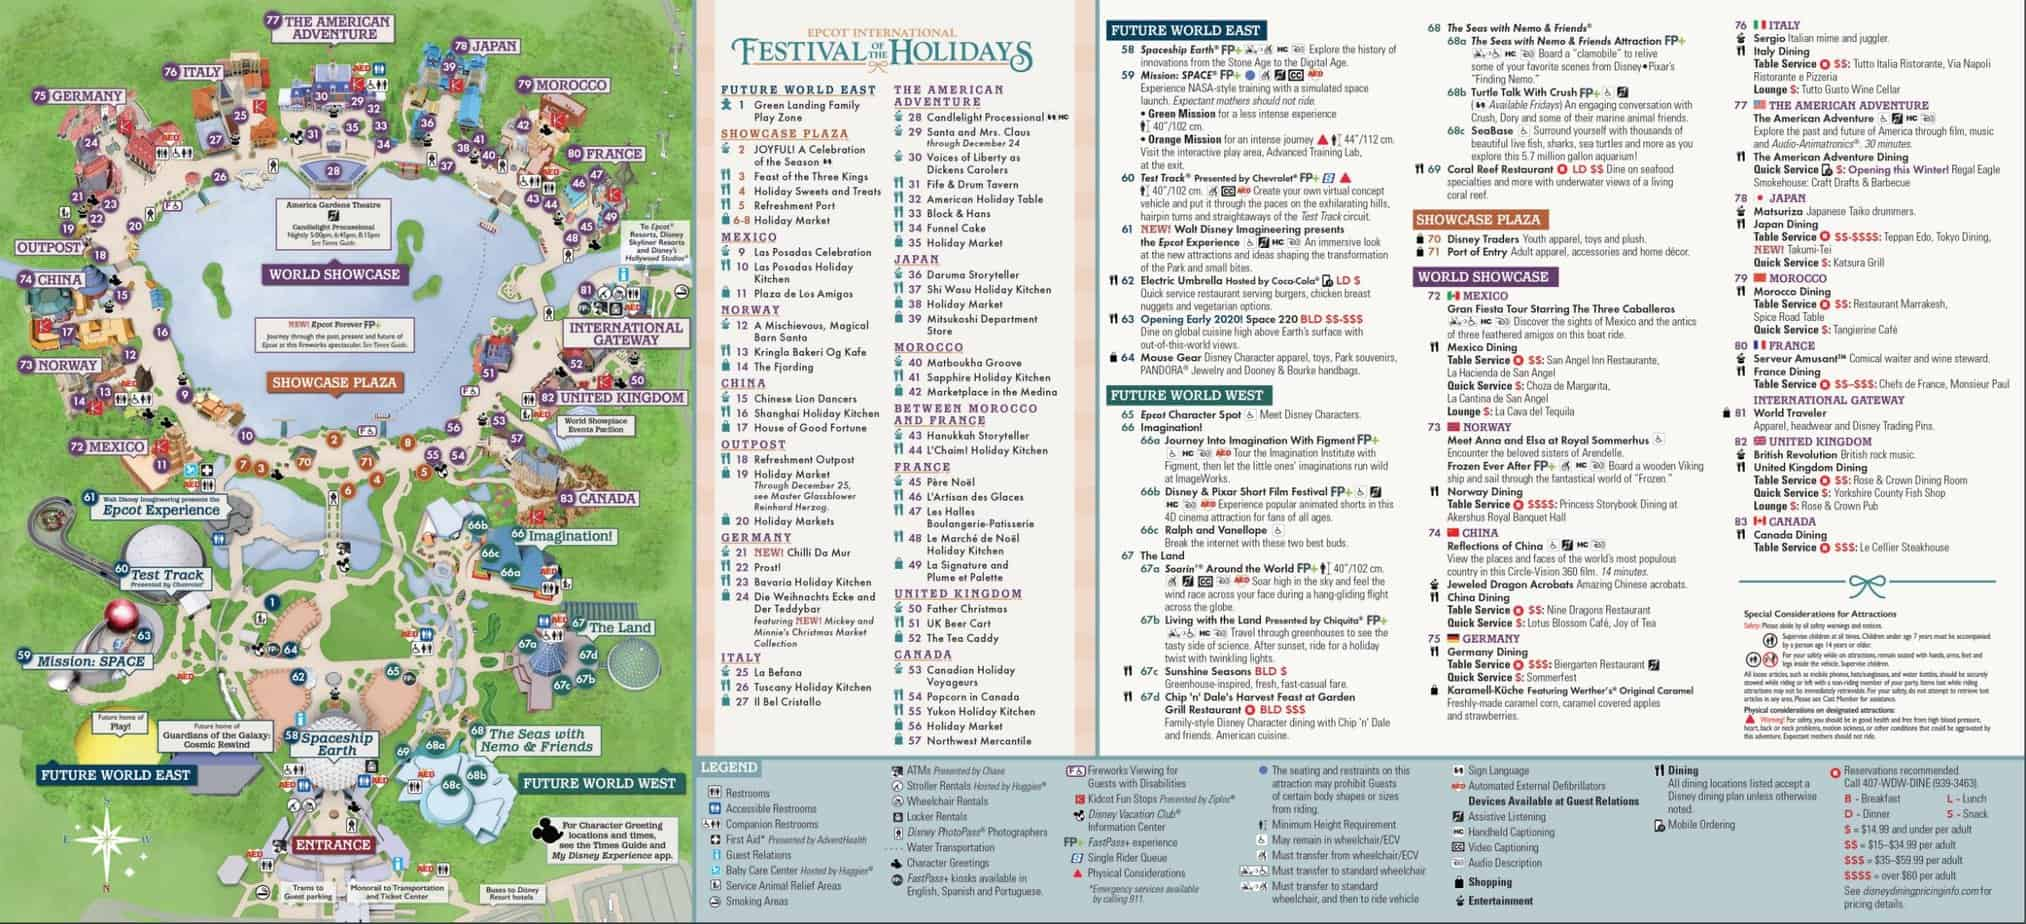 Guide to Epcot Festival of the Holidays 3